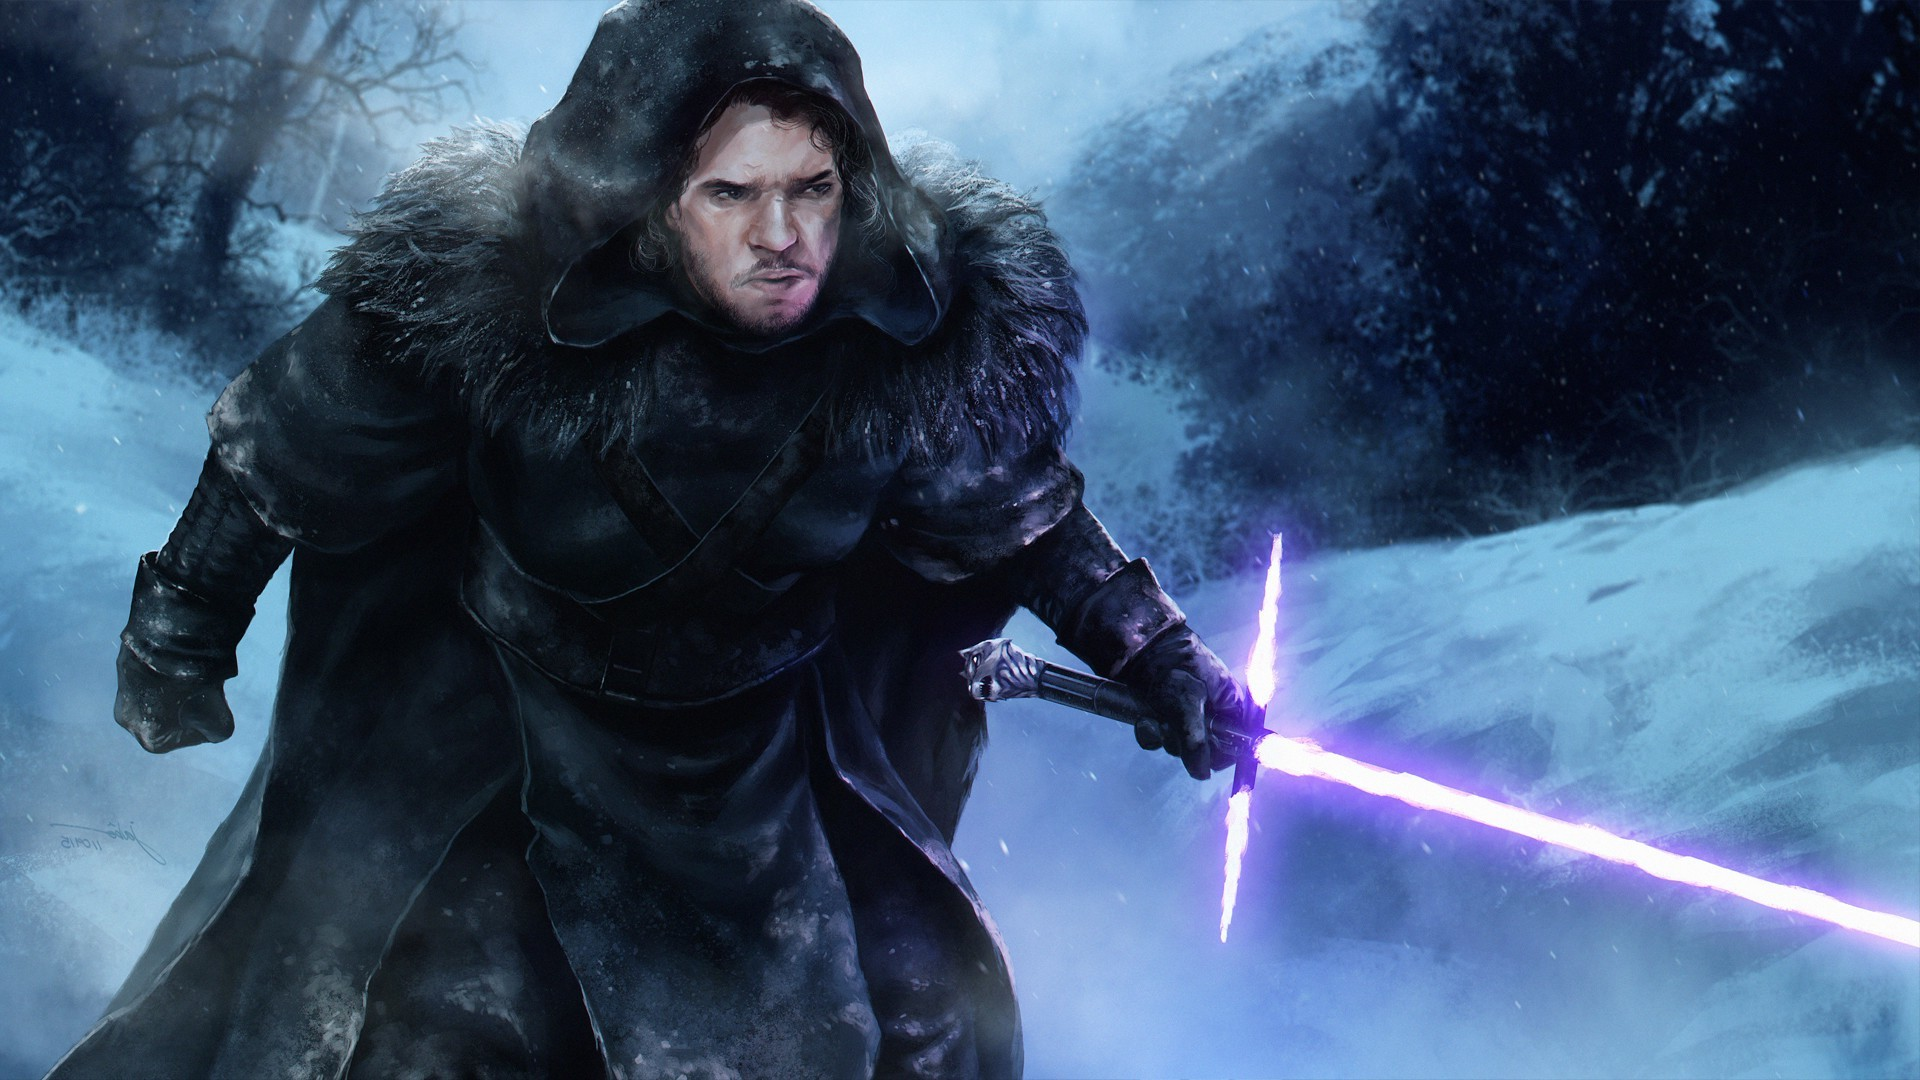 1920x1080 Star Wars, Game Of Thrones, Jon Snow, Artwork, Fantasy Art, Lightsaber Wallpapers  HD / Desktop and Mobile Backgrounds